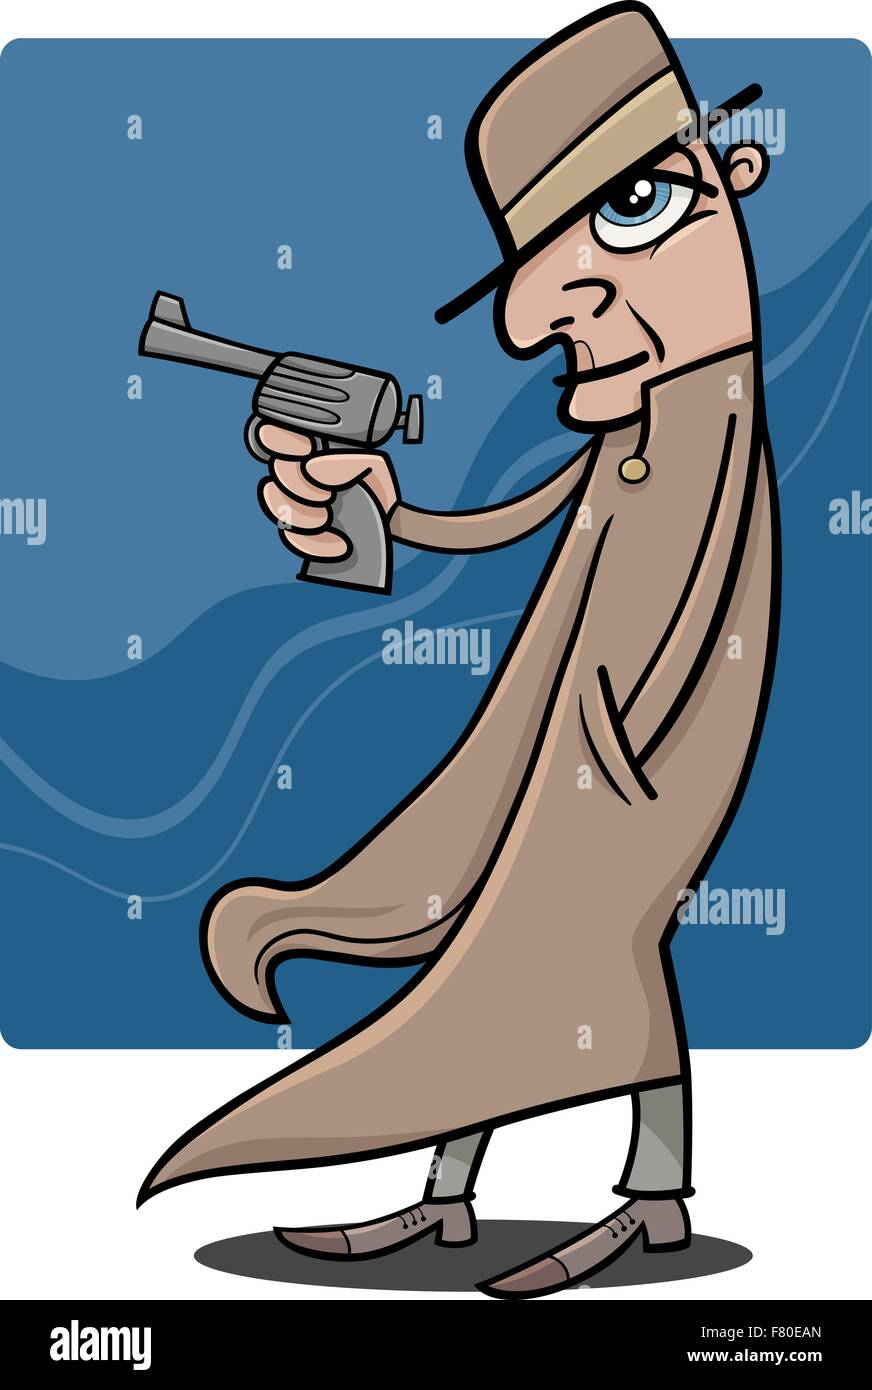 Cartoon Gun Gangster Stockfotos & Cartoon Gun Gangster Bilder ...